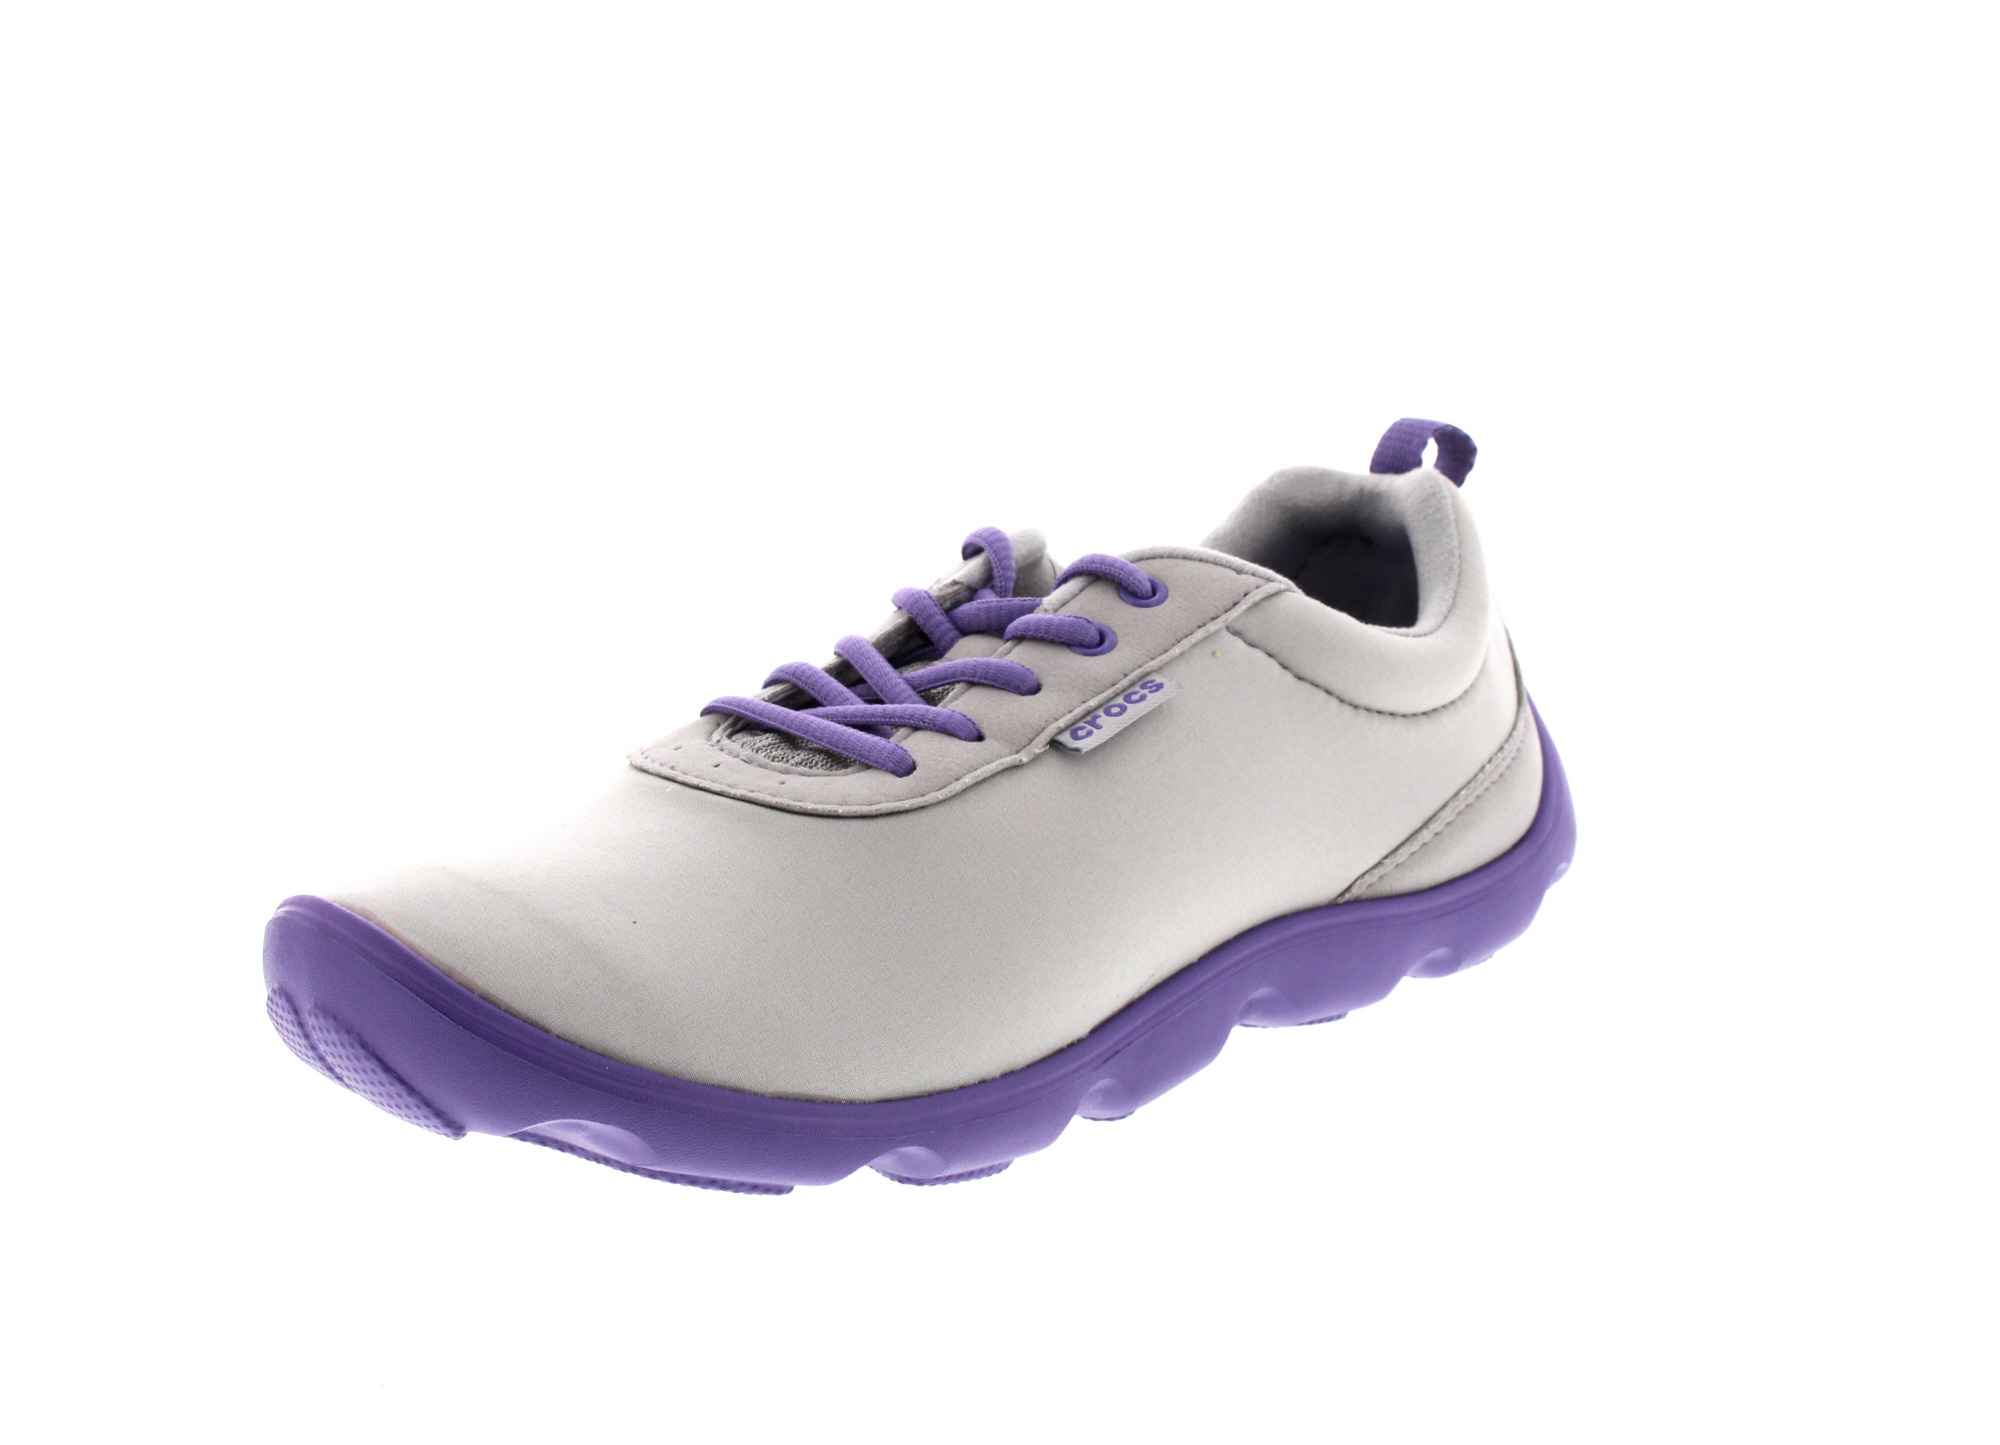 CROCS Damen - DUET BUSY DAY LACE UP - light grey violet0